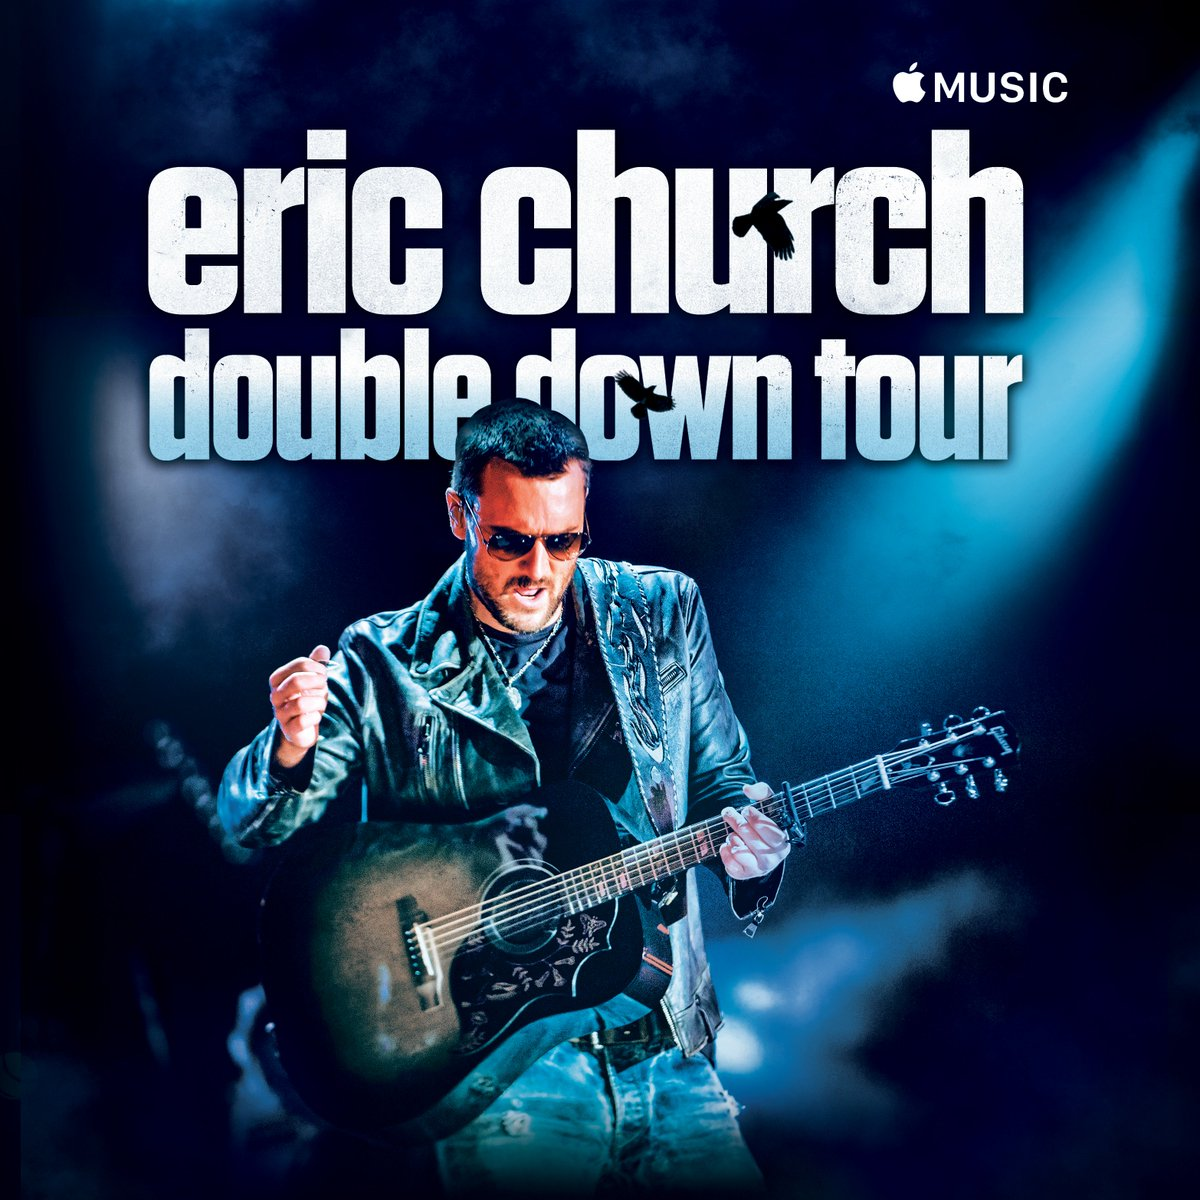 Sweettweets From Eric Church